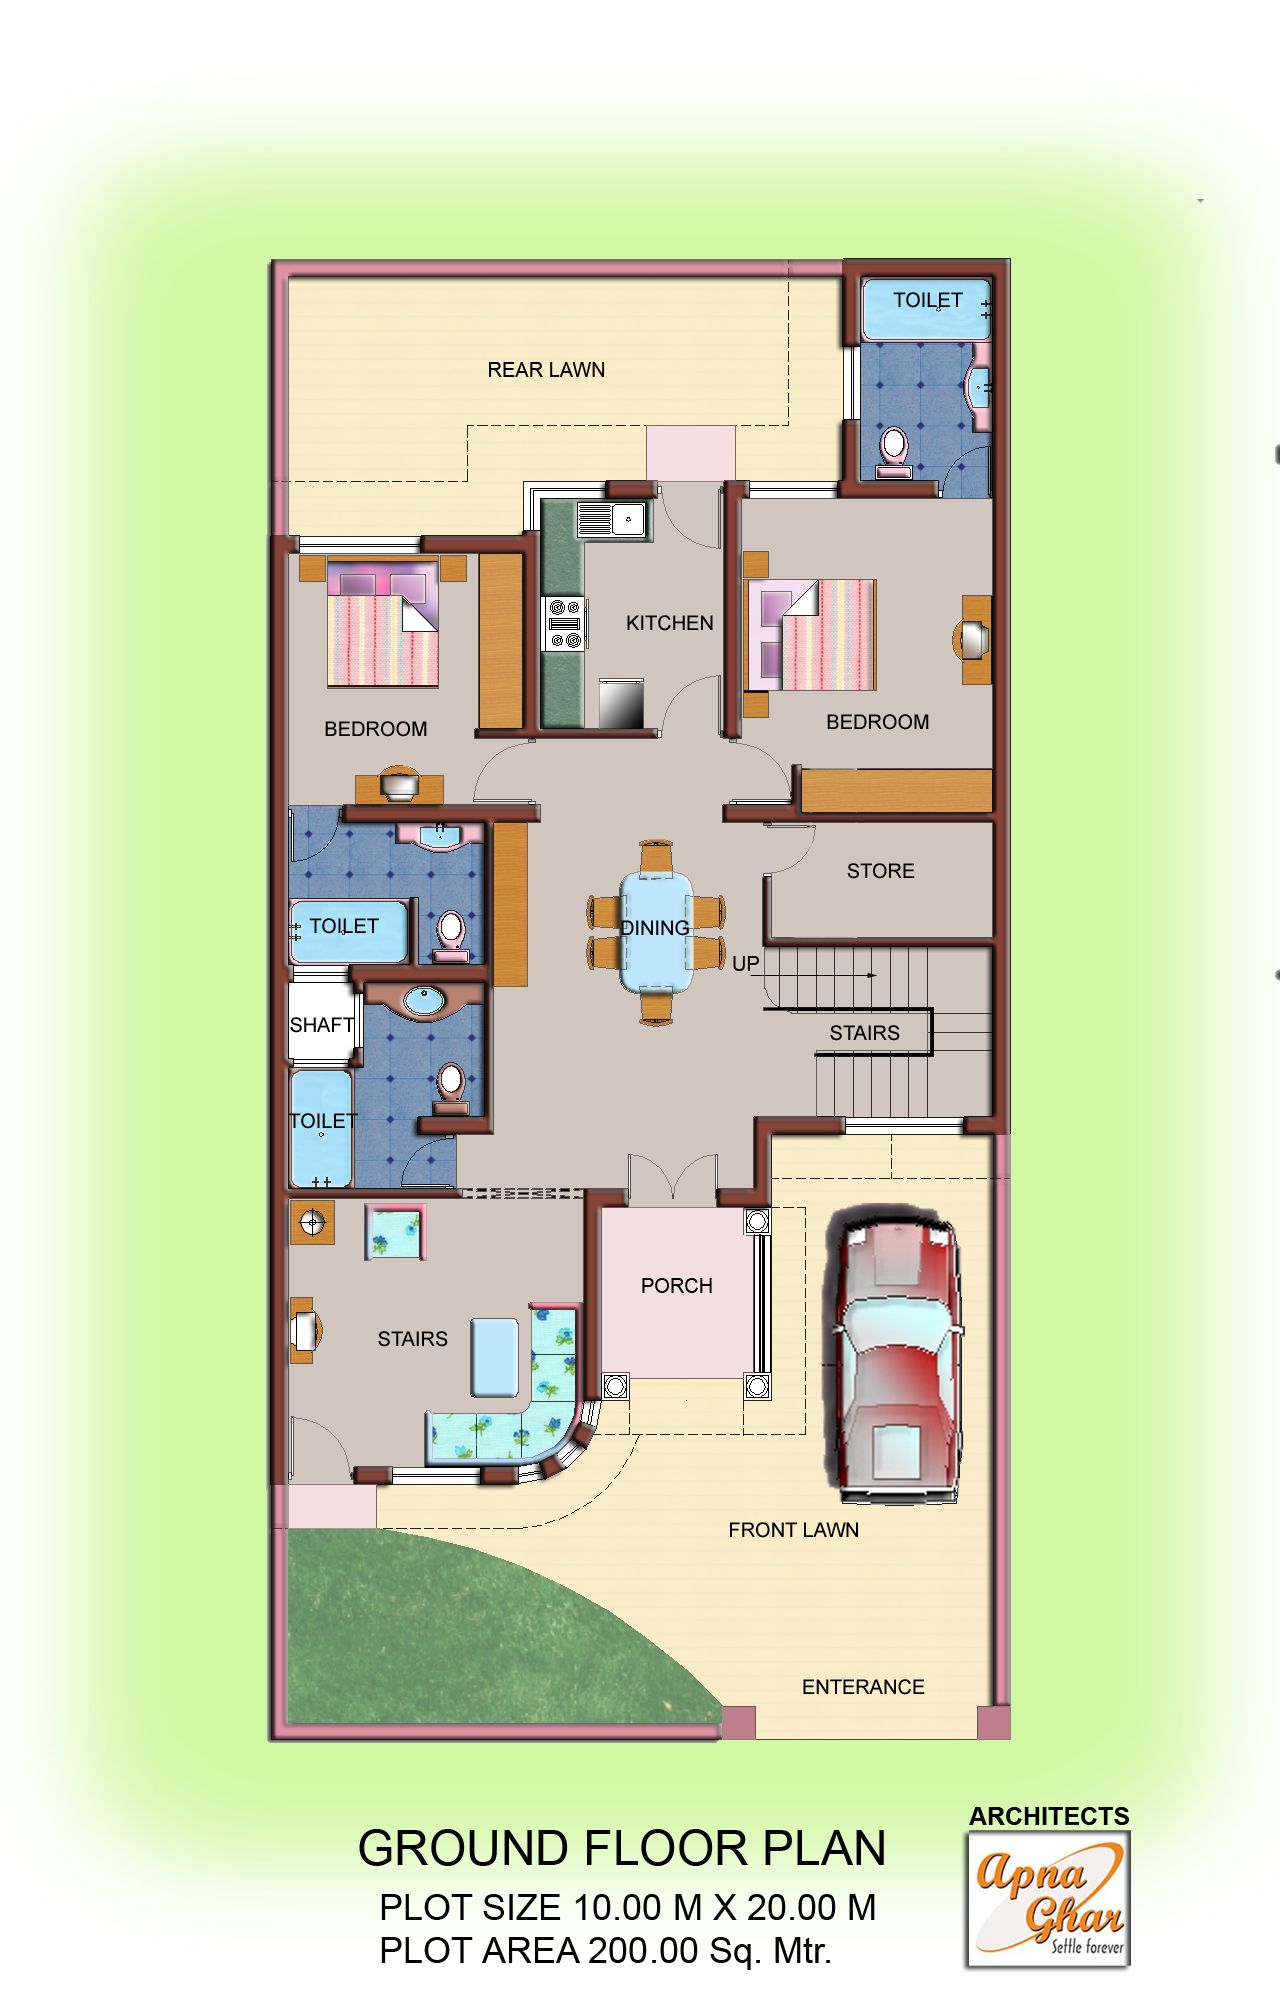 3d cut model of a floor plan find all architectural drawings floor plans that explain each and every detail of your house for assisting construction process